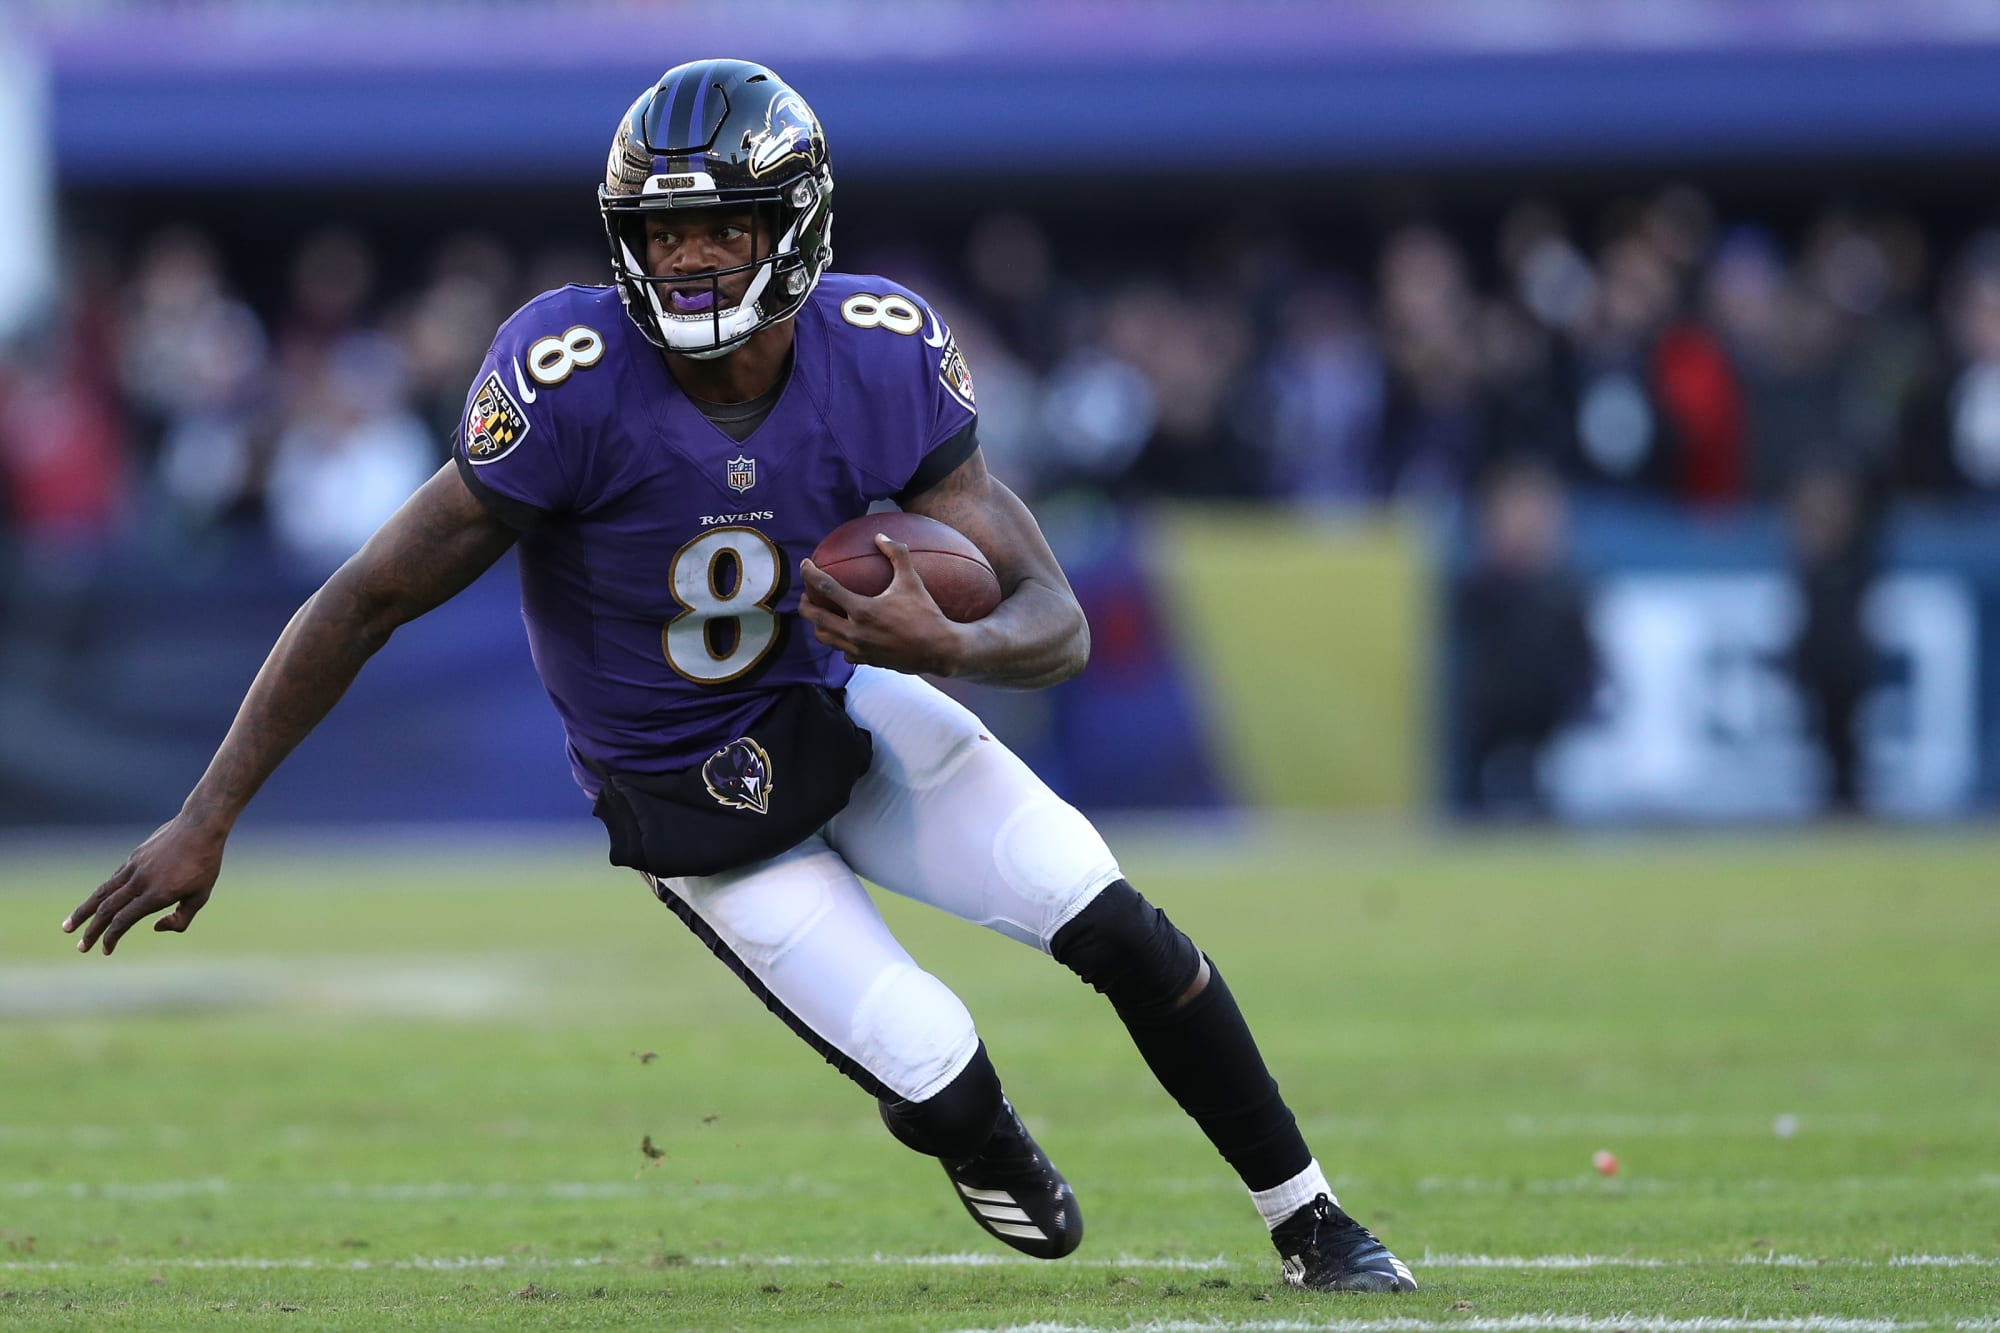 Ravens offense could be both revolutionary and old school